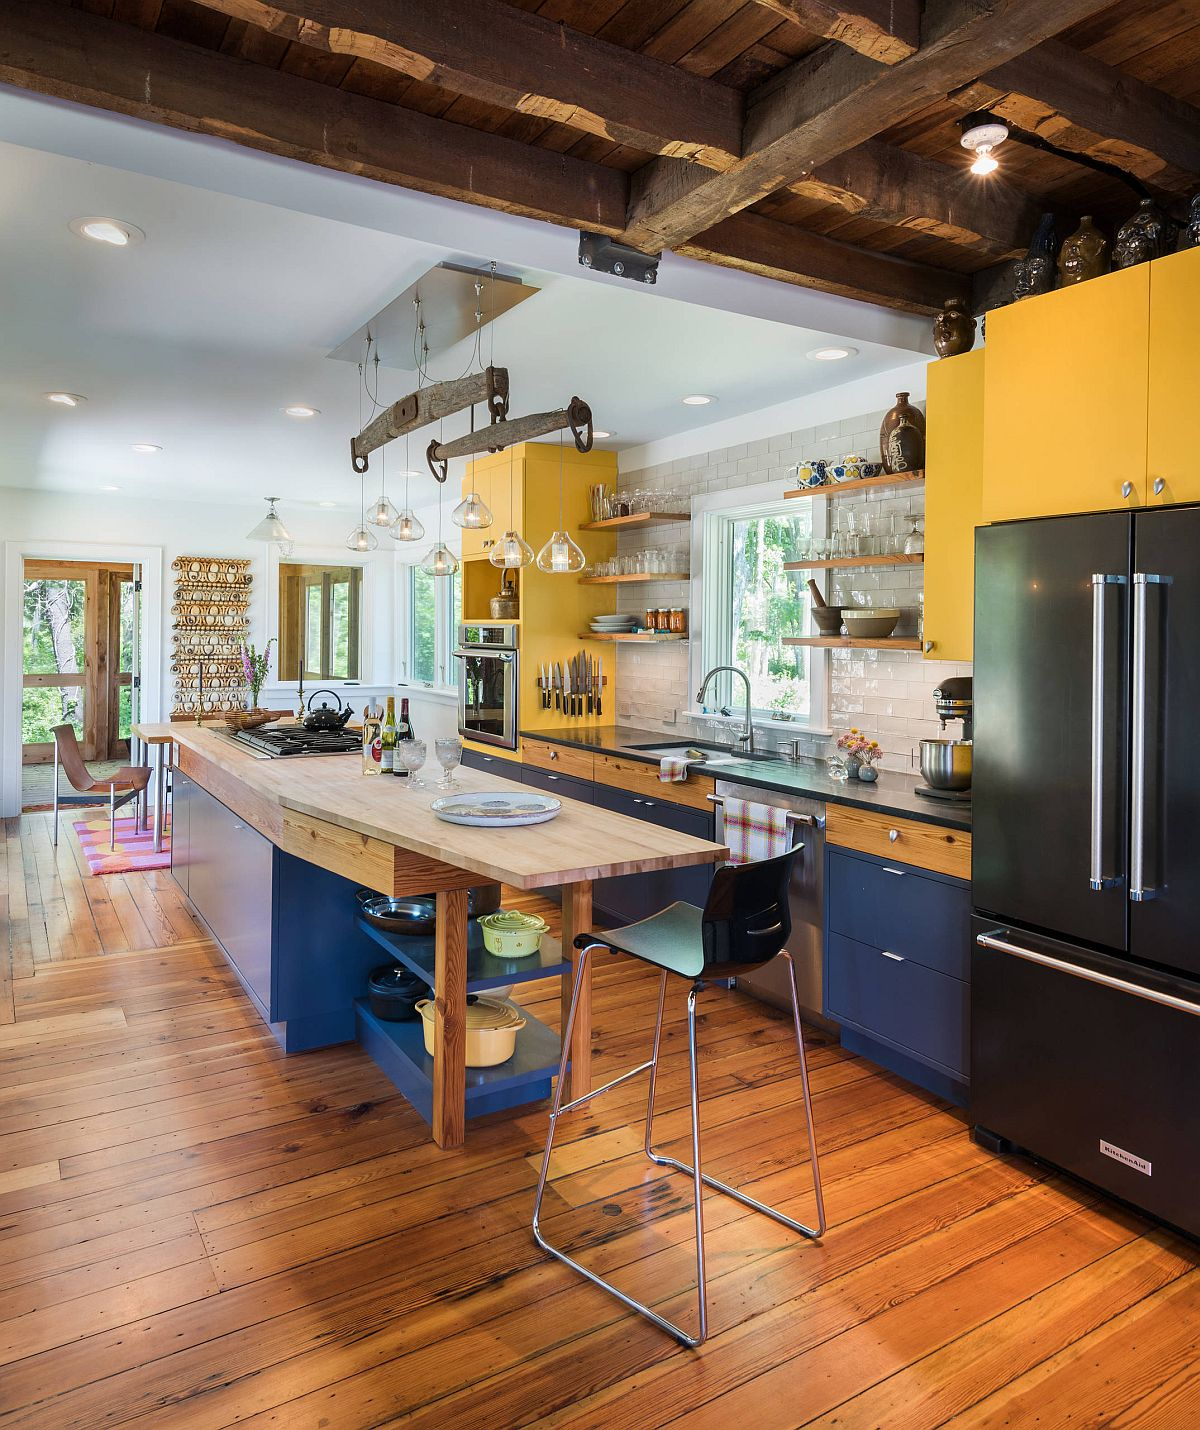 Modern farmhouse kitchen with brilliant splashes of yellow and blue thrown into the mix